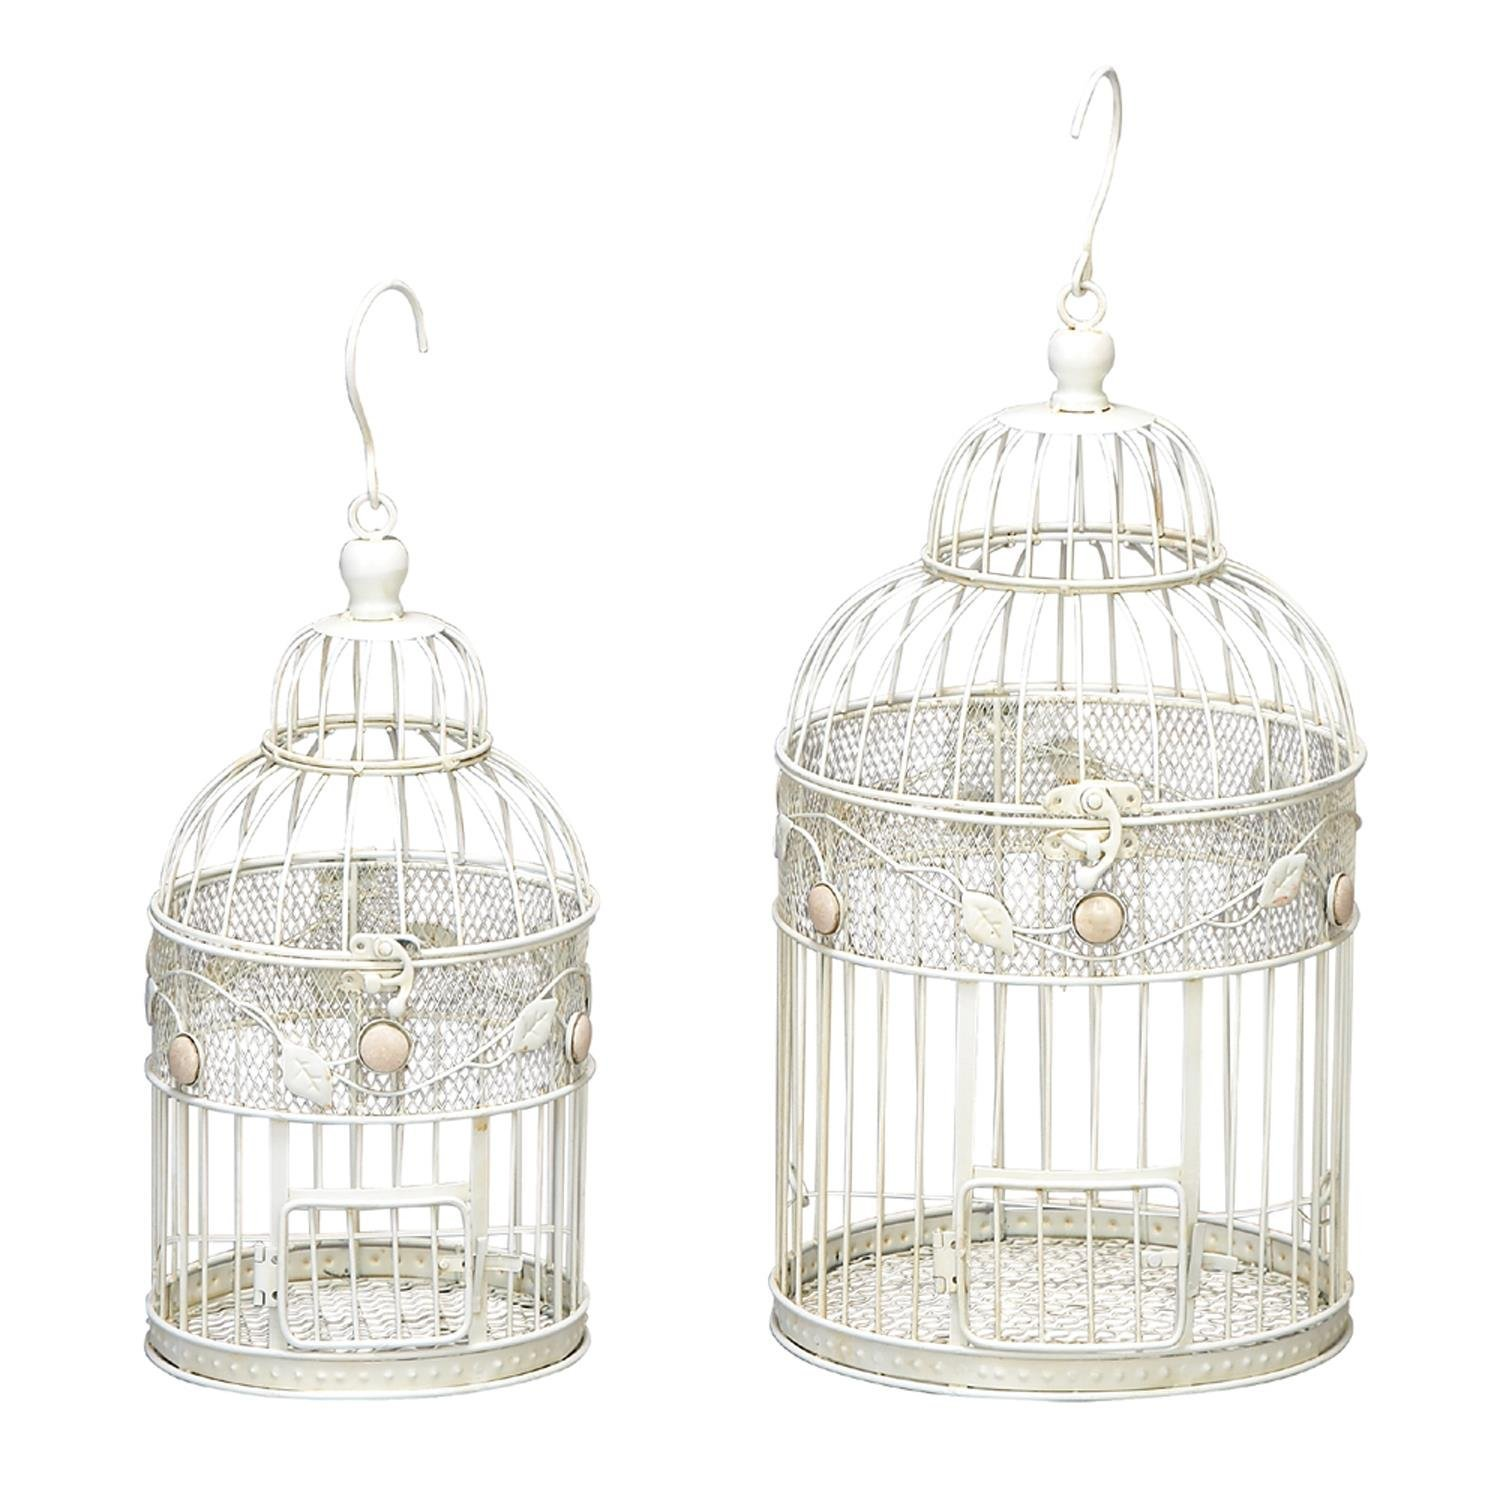 ORE International 64656 Metal Birdcages, White, Set of 2